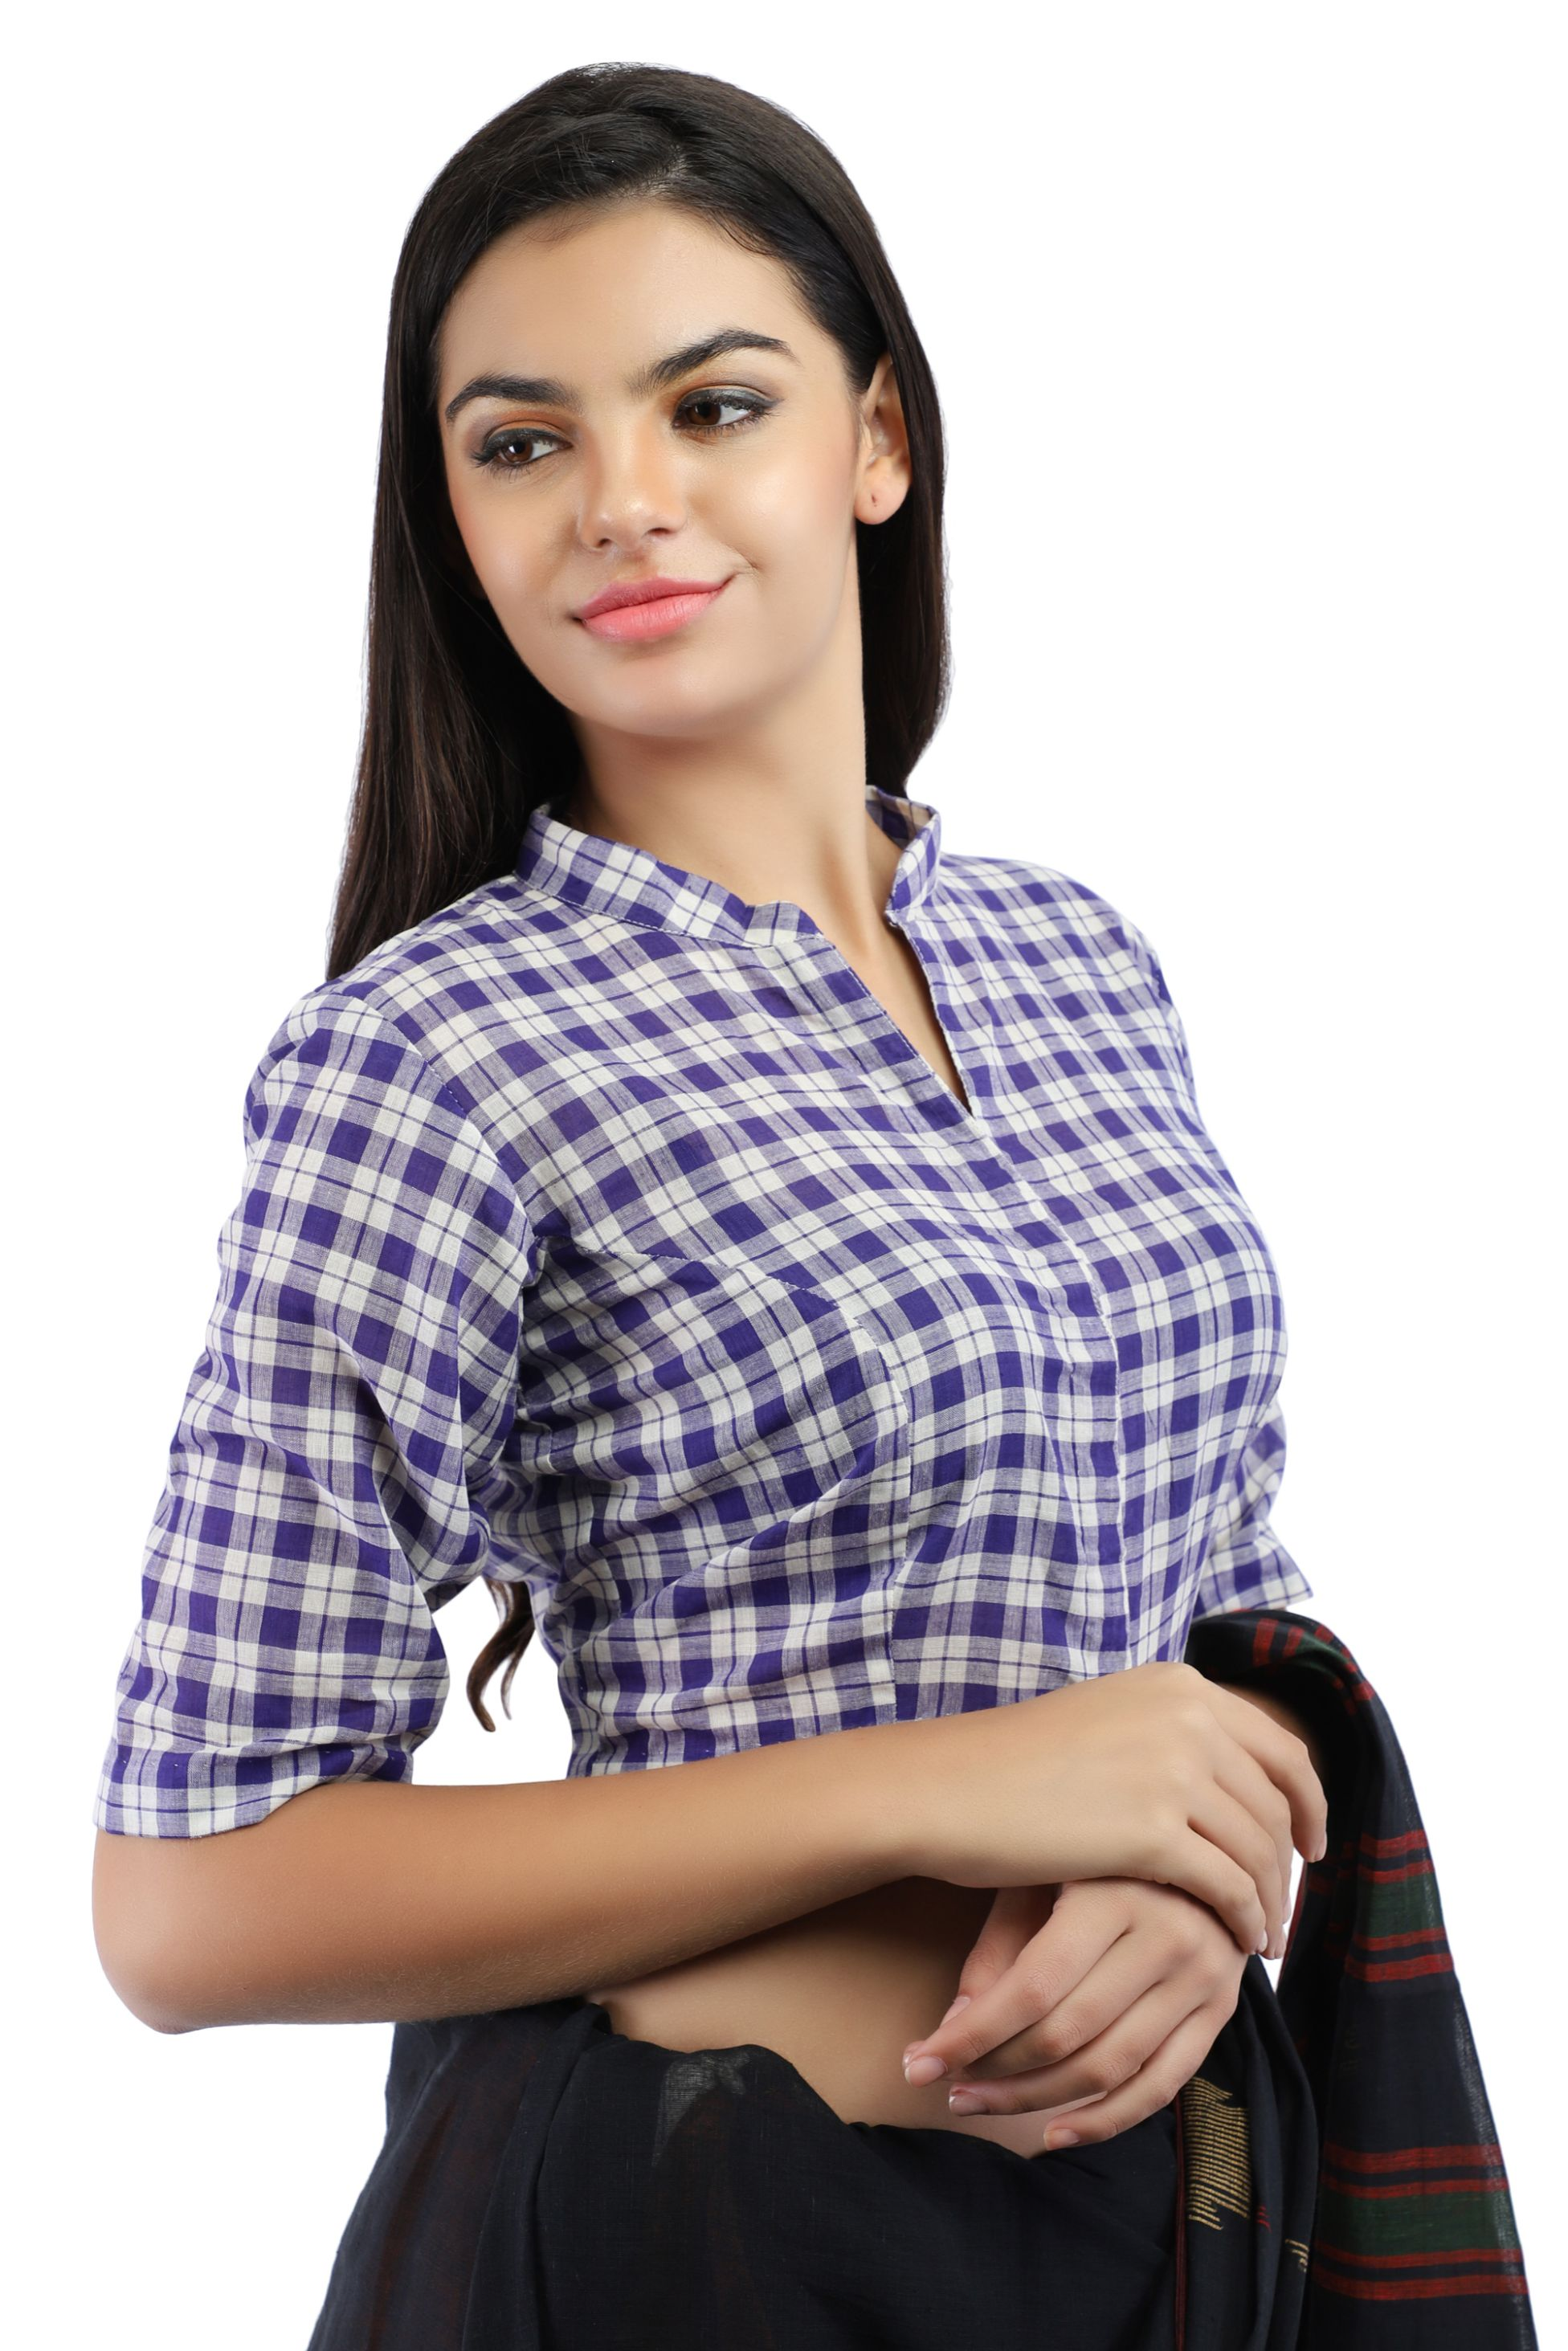 Pure Cotton Handloom Checks Blouse in Purple and White chinese Collar With Hook Closure on Front 1